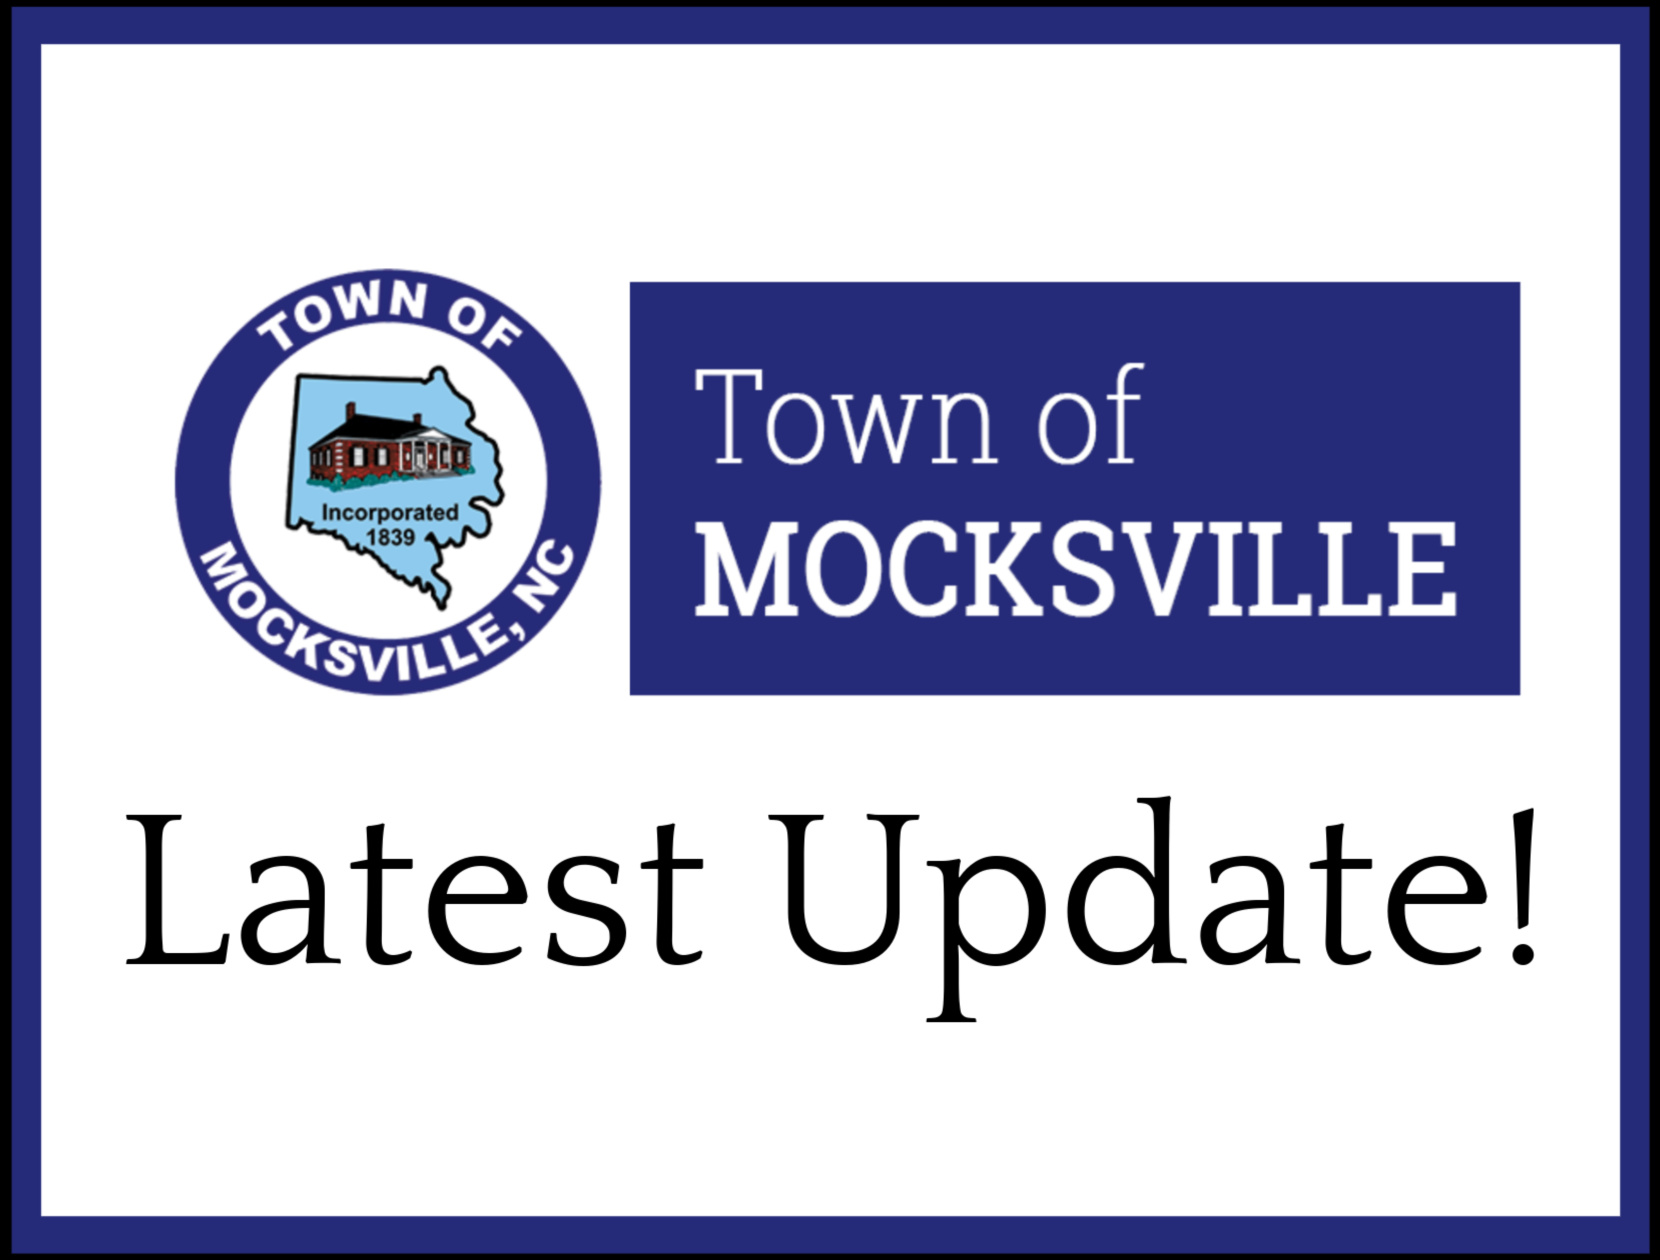 Latest update on COVID-19 Business changes for Mocksville NC